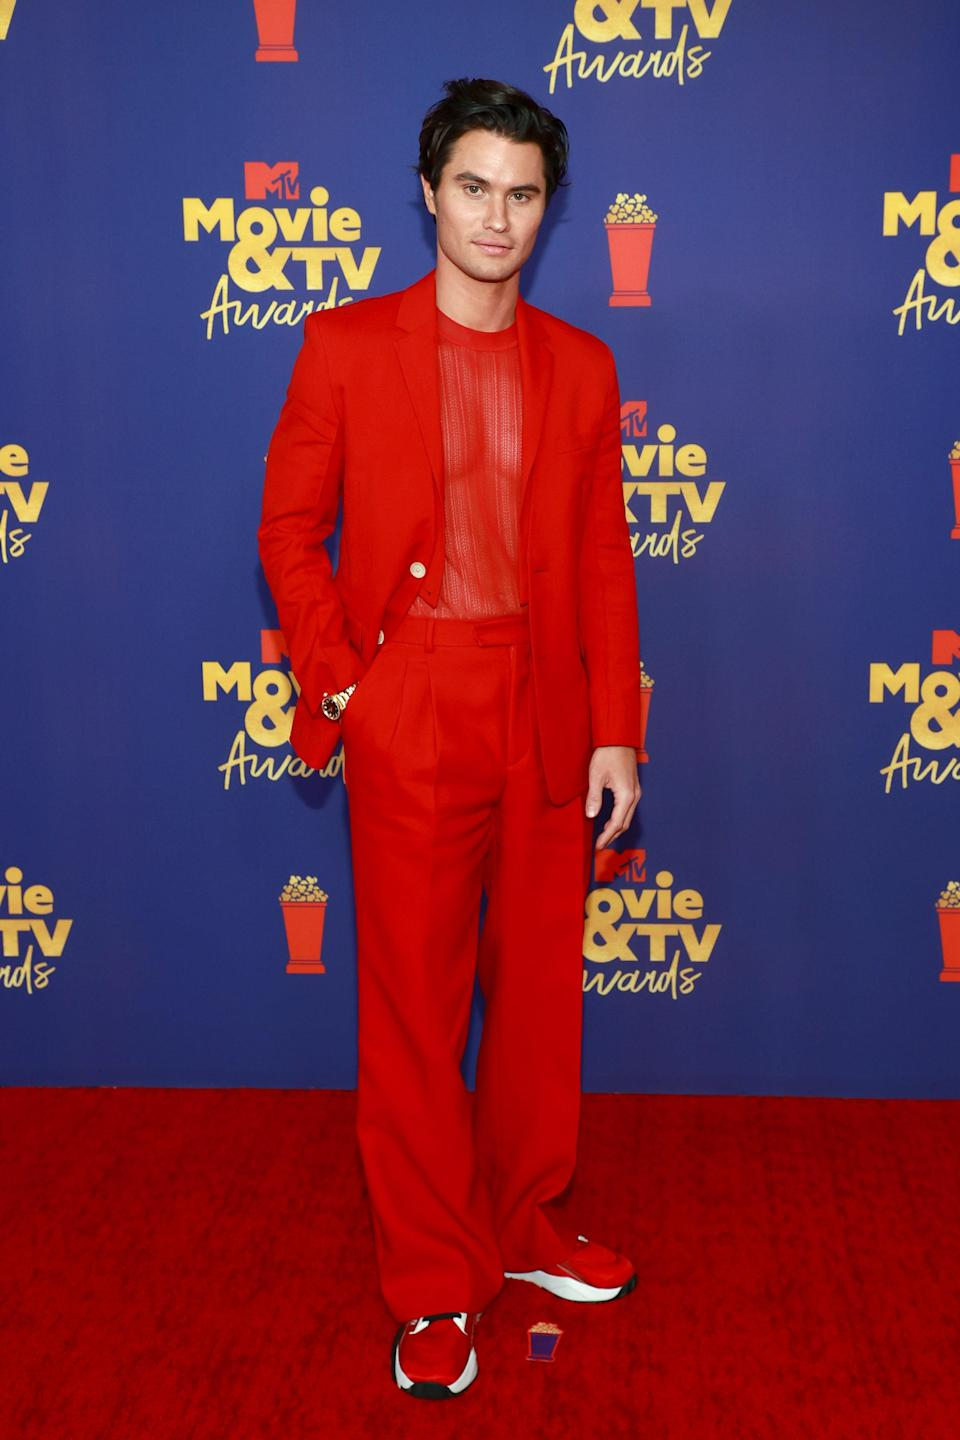 """In a sea of color, red appeared to be the <em>it</em> choice of the season. Matching with co-star and IRL girlfriend Madelyn, it only made sense that <a href=""""https://www.teenvogue.com/story/outer-banks-season-2-finished-filming?mbid=synd_yahoo_rss"""" rel=""""nofollow noopener"""" target=""""_blank"""" data-ylk=""""slk:Outer Banks"""" class=""""link rapid-noclick-resp""""><em>Outer Banks</em></a> actor Chase Stokes would show up head to toe in it. Styled by Avoyer Magnan, Chase wore a monochrome Fendi ensemble. They say red is a passionate color and the pair <em>did</em> share <a href=""""https://www.teenvogue.com/story/outer-banks-stars-chase-stokes-madelyn-cline-shared-kisses-mtv-movie-and-tv-awards-2021?mbid=synd_yahoo_rss"""" rel=""""nofollow noopener"""" target=""""_blank"""" data-ylk=""""slk:a passionate kiss on stage after winning the Best Kiss award"""" class=""""link rapid-noclick-resp"""">a passionate kiss on stage after winning the Best Kiss award</a>, after all!"""